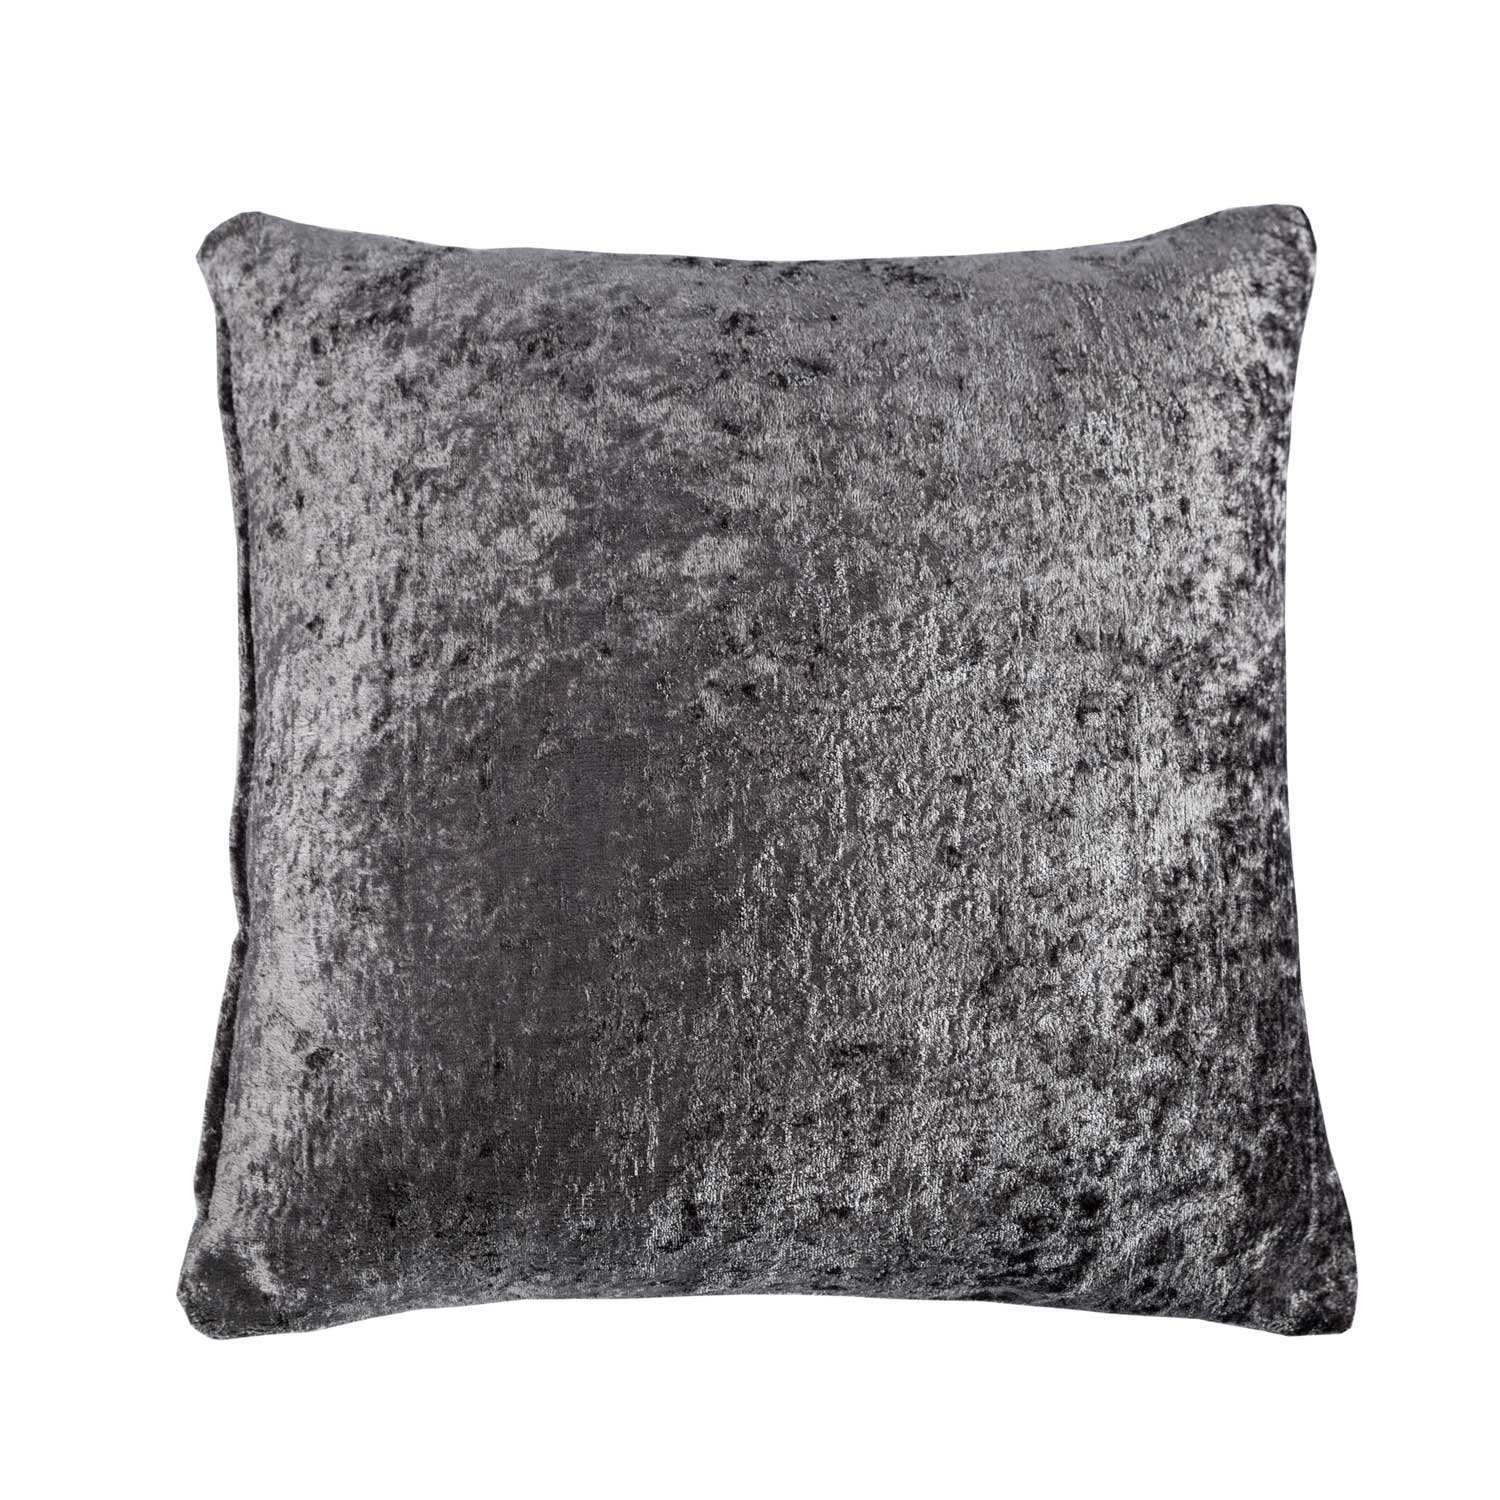 Square Scatter Cushion for Sofa or Bed 45 cm Homescapes Luxury Champagne Crushed Velvet Cushion Cover 18 x 18 Inch